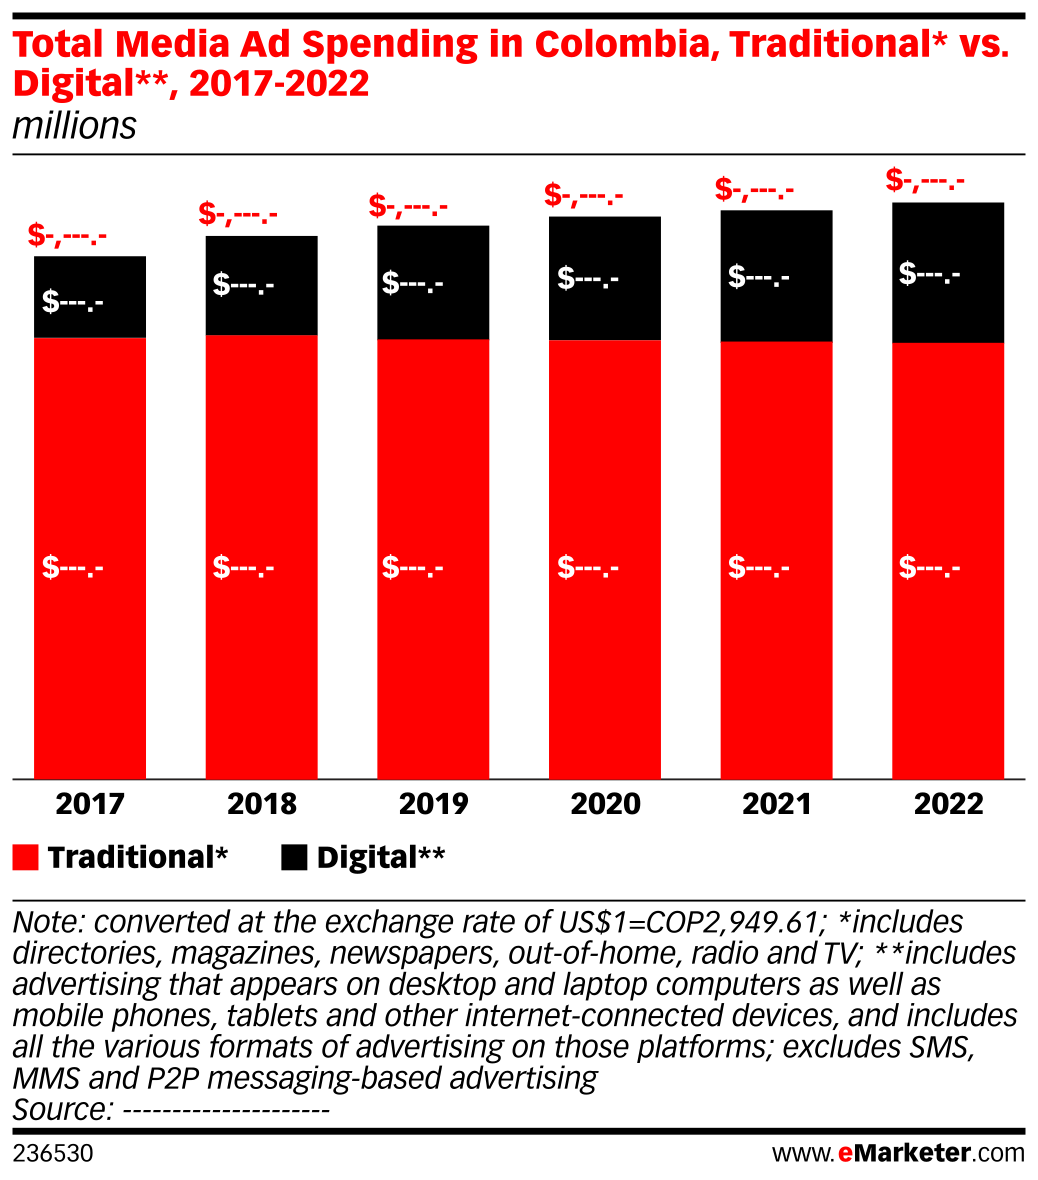 Total Media Ad Spending in Colombia, Traditional* vs. Digital**, 2017-2022 (millions)